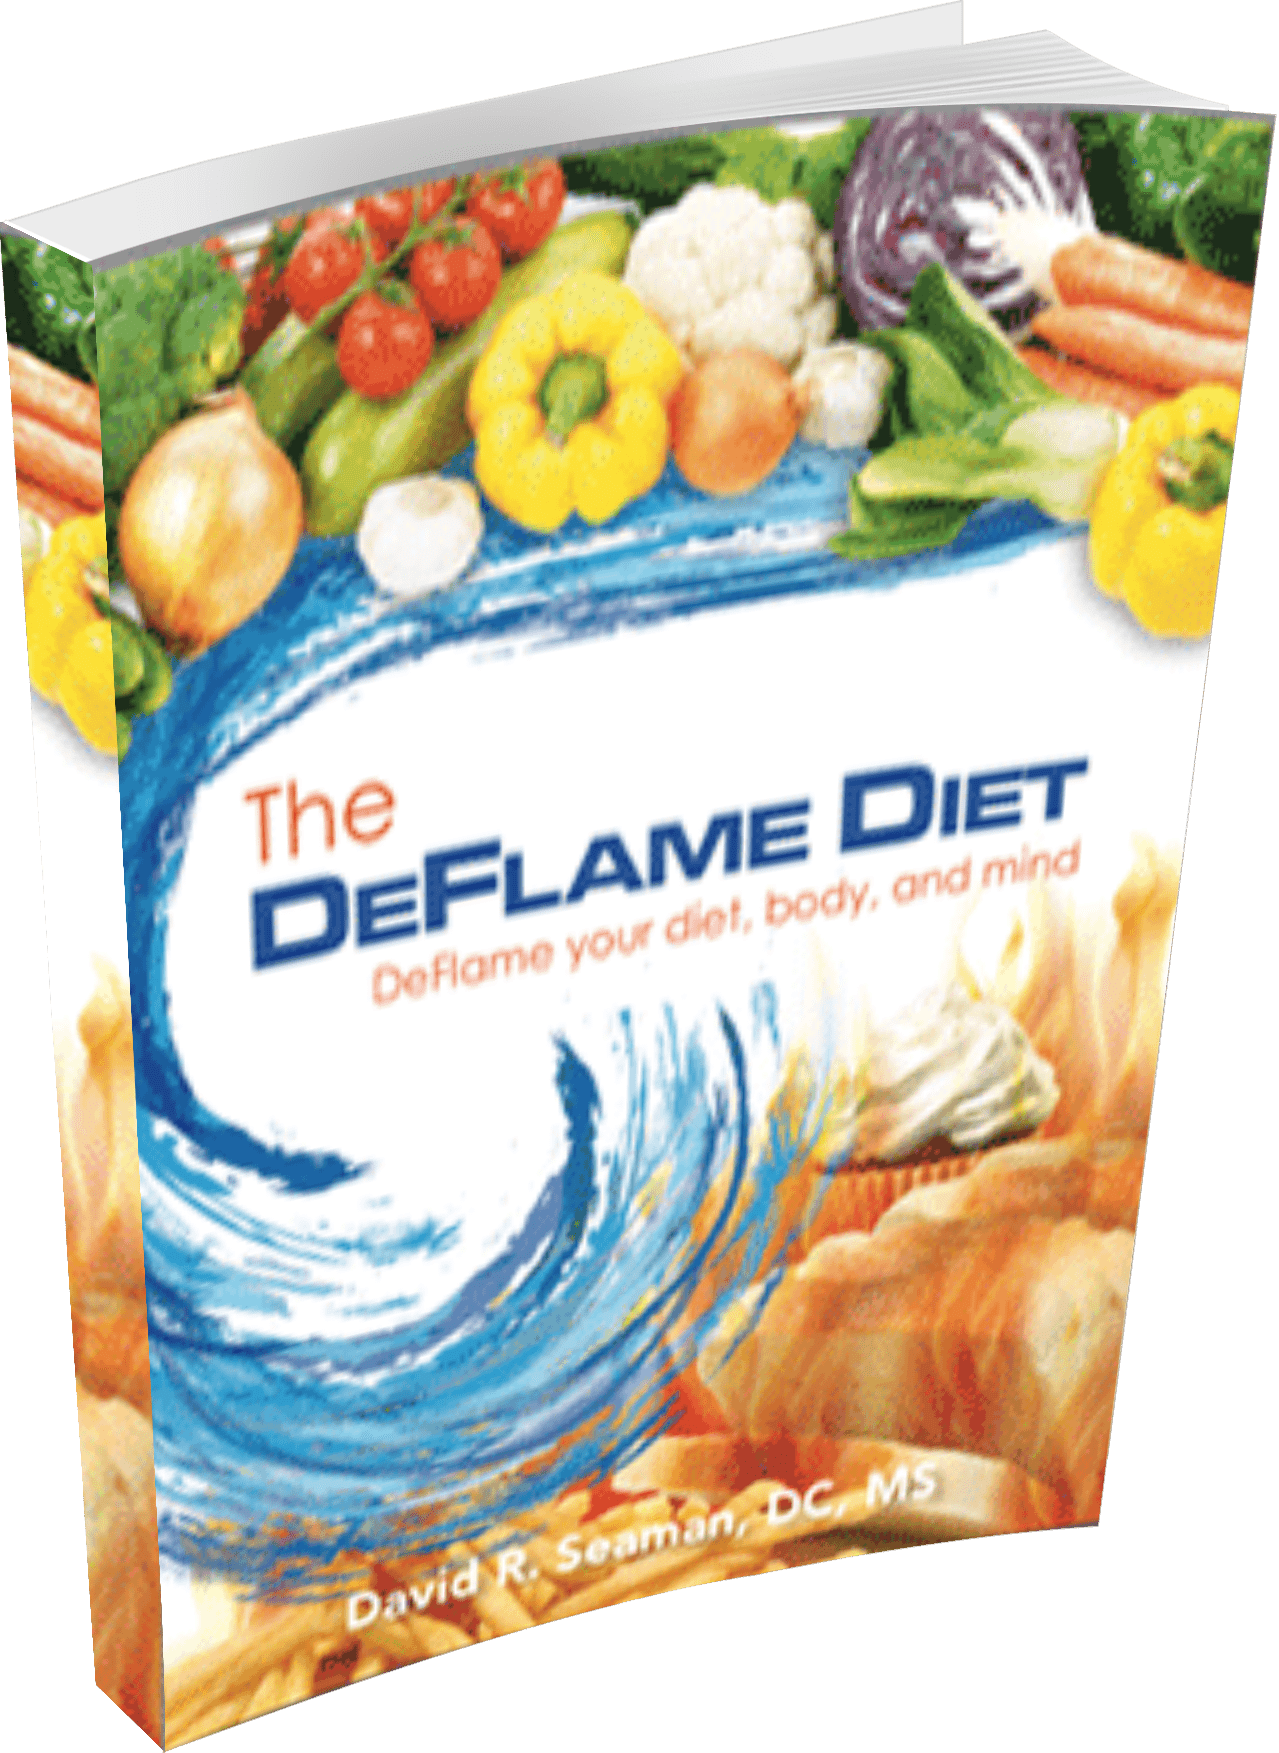 DeFlame Diet Book